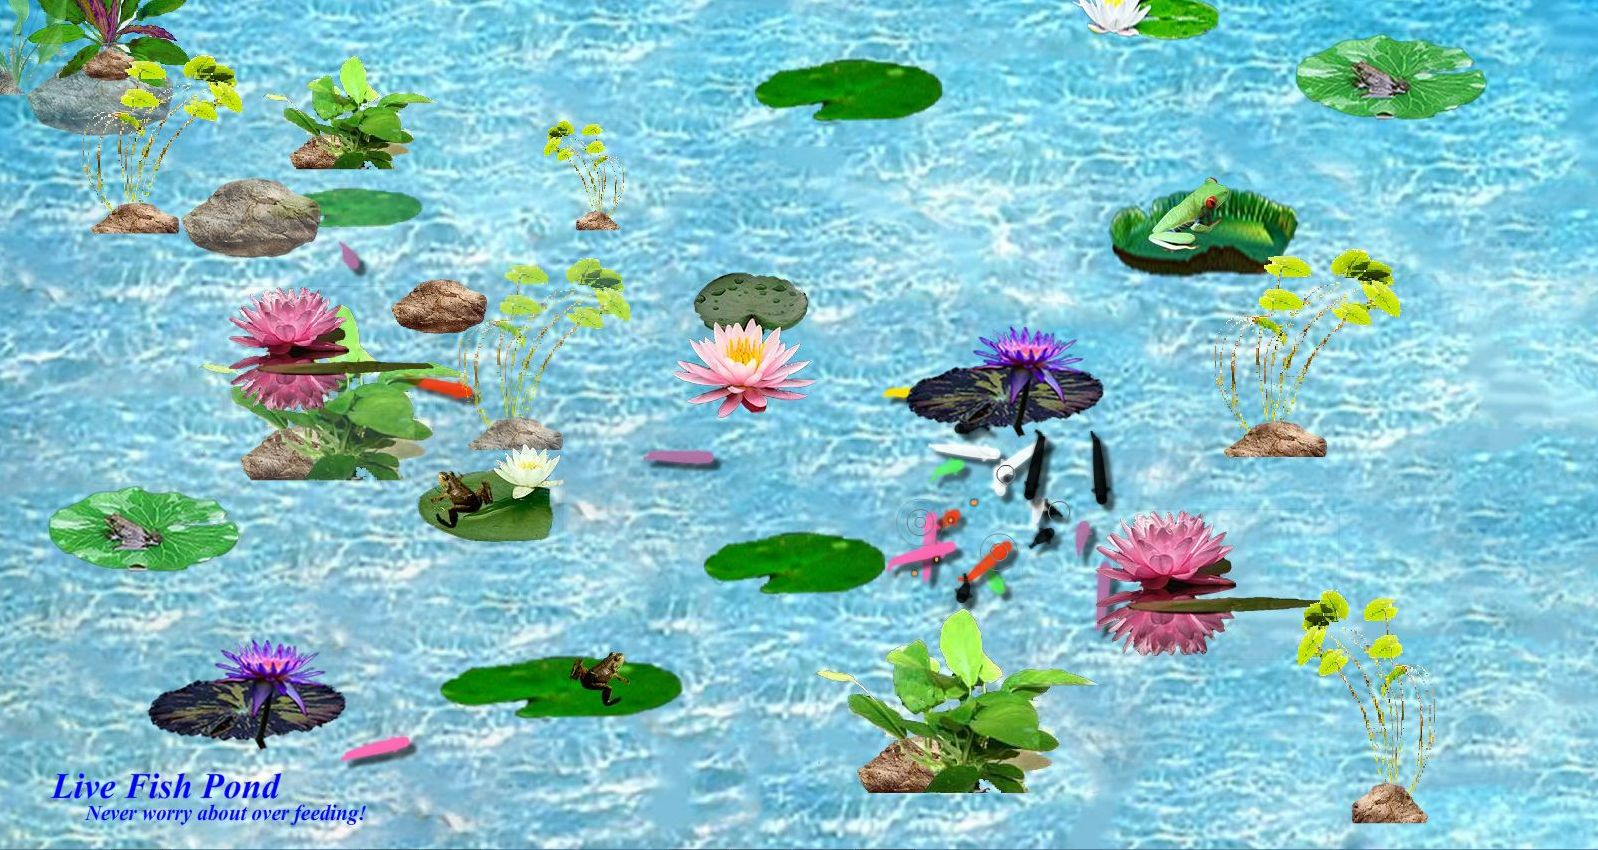 Live fish pond download 11street malaysia board games for Fish pond game